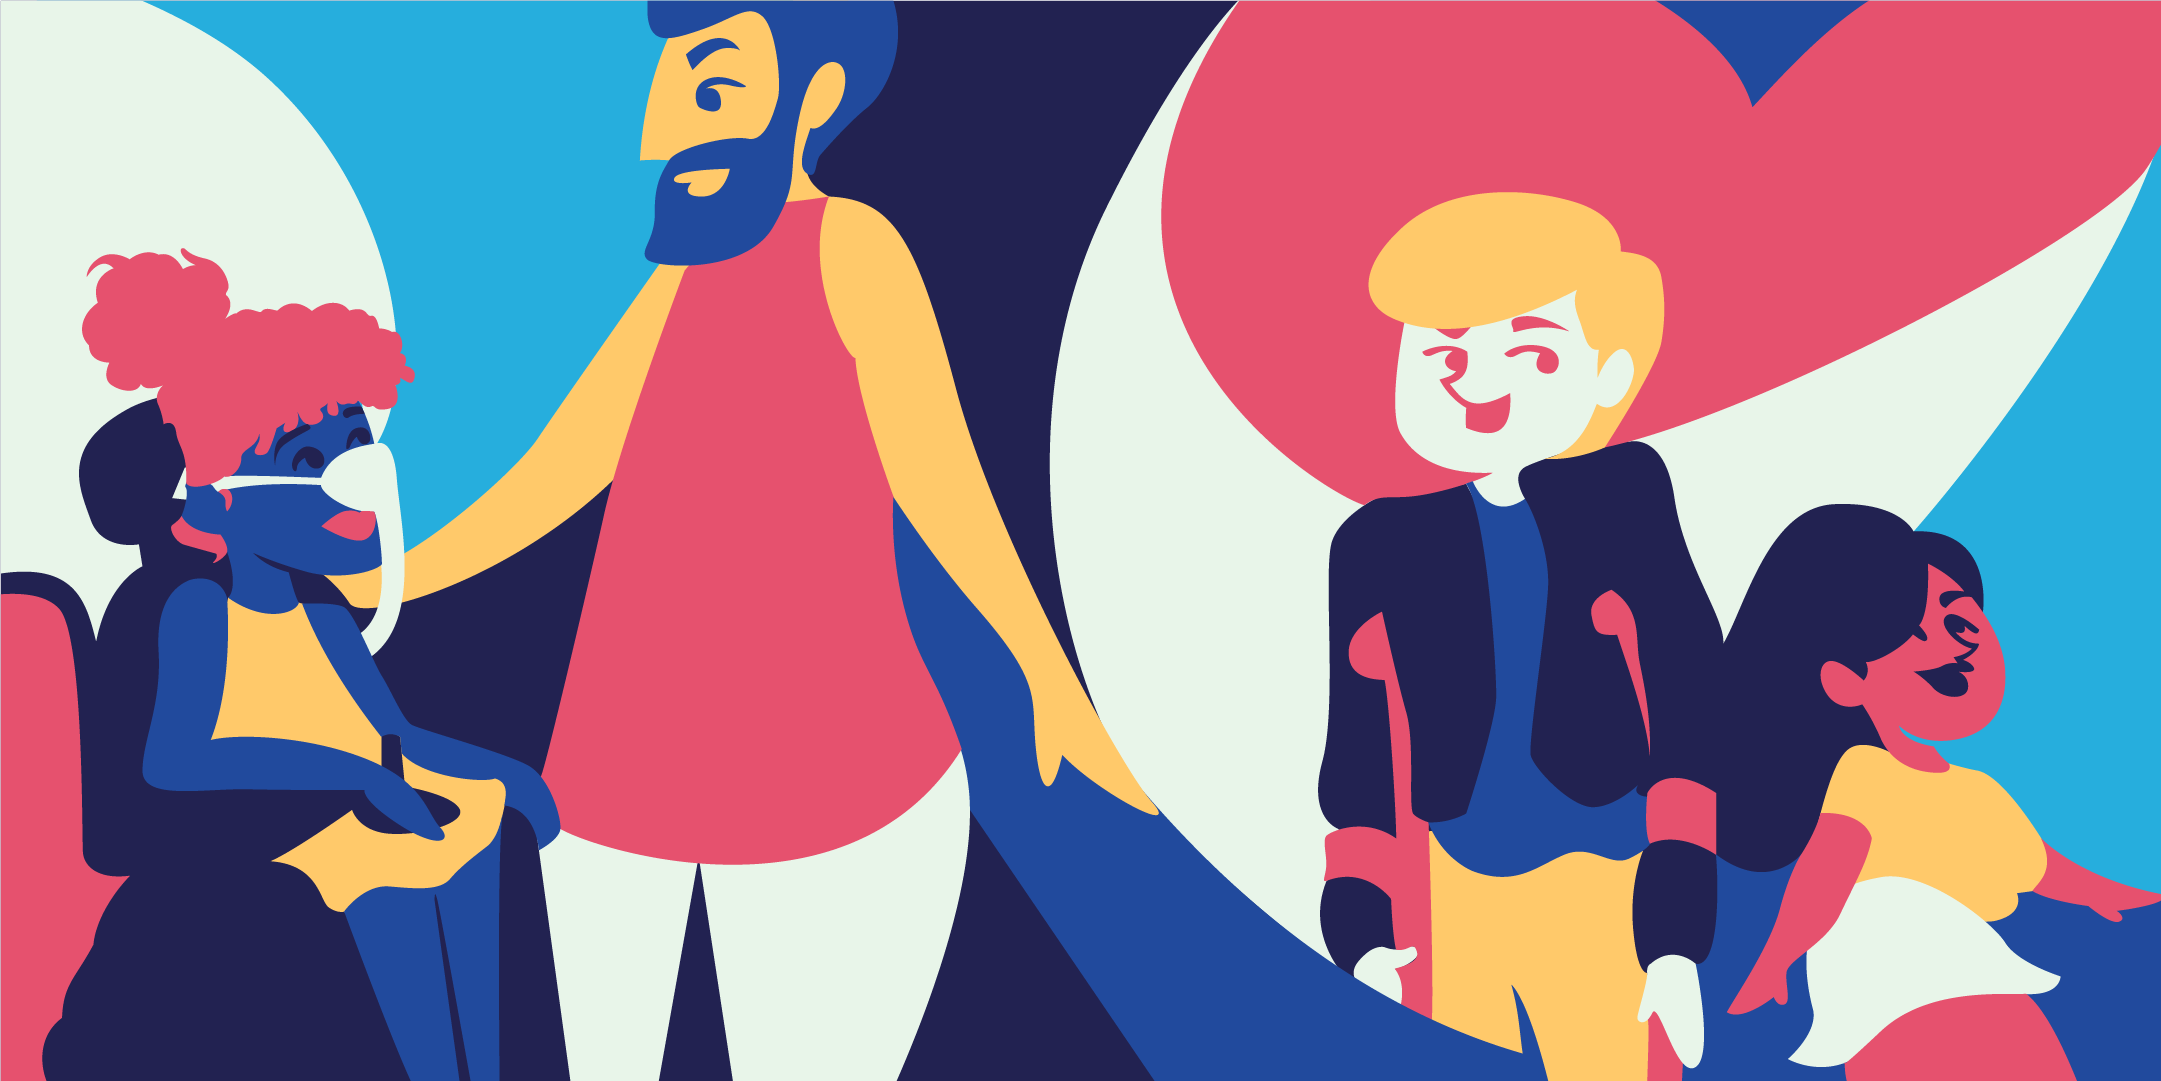 A colourful illustration of 4 people with varying disabilities